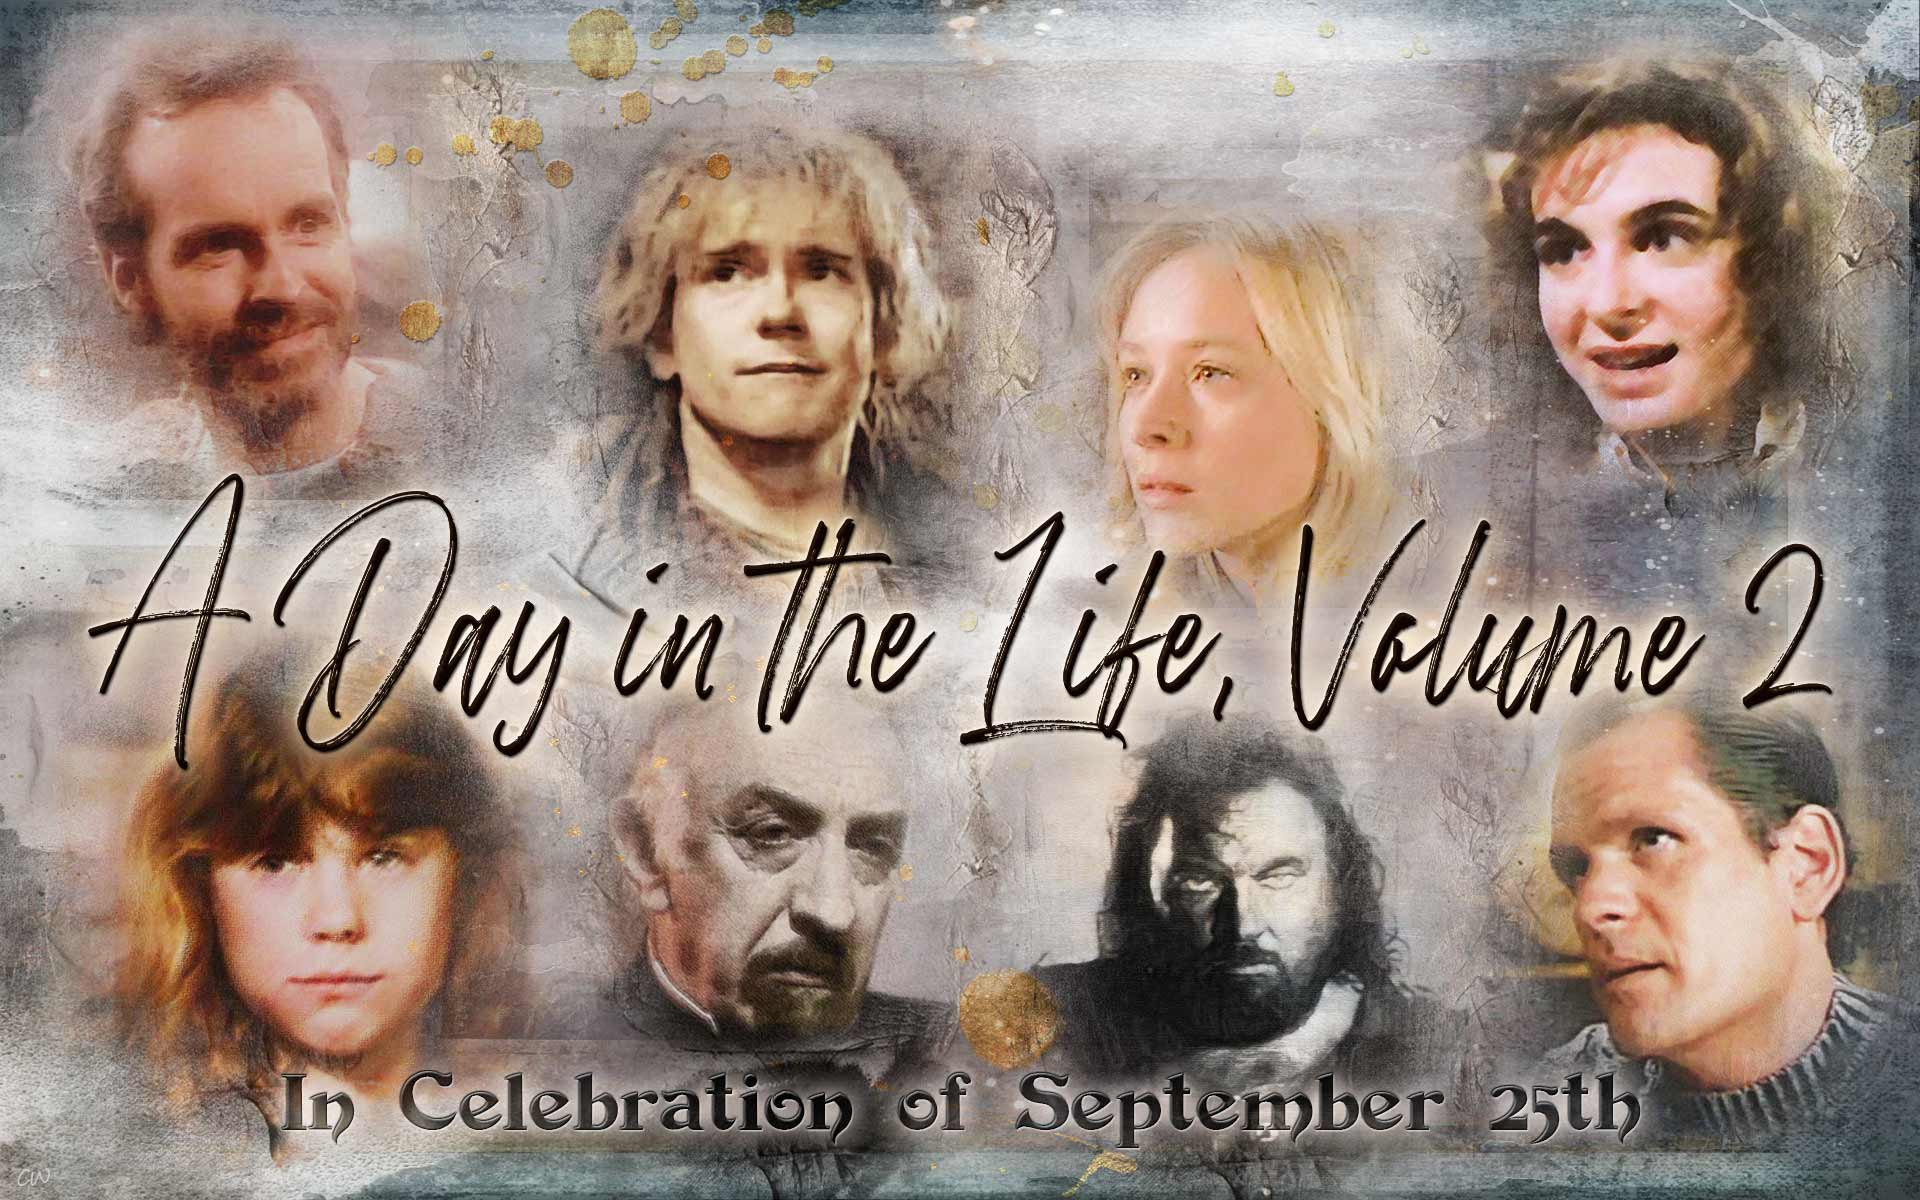 A Day in the Life volume 2 main graphic with the portraits of the 8 characters with stories